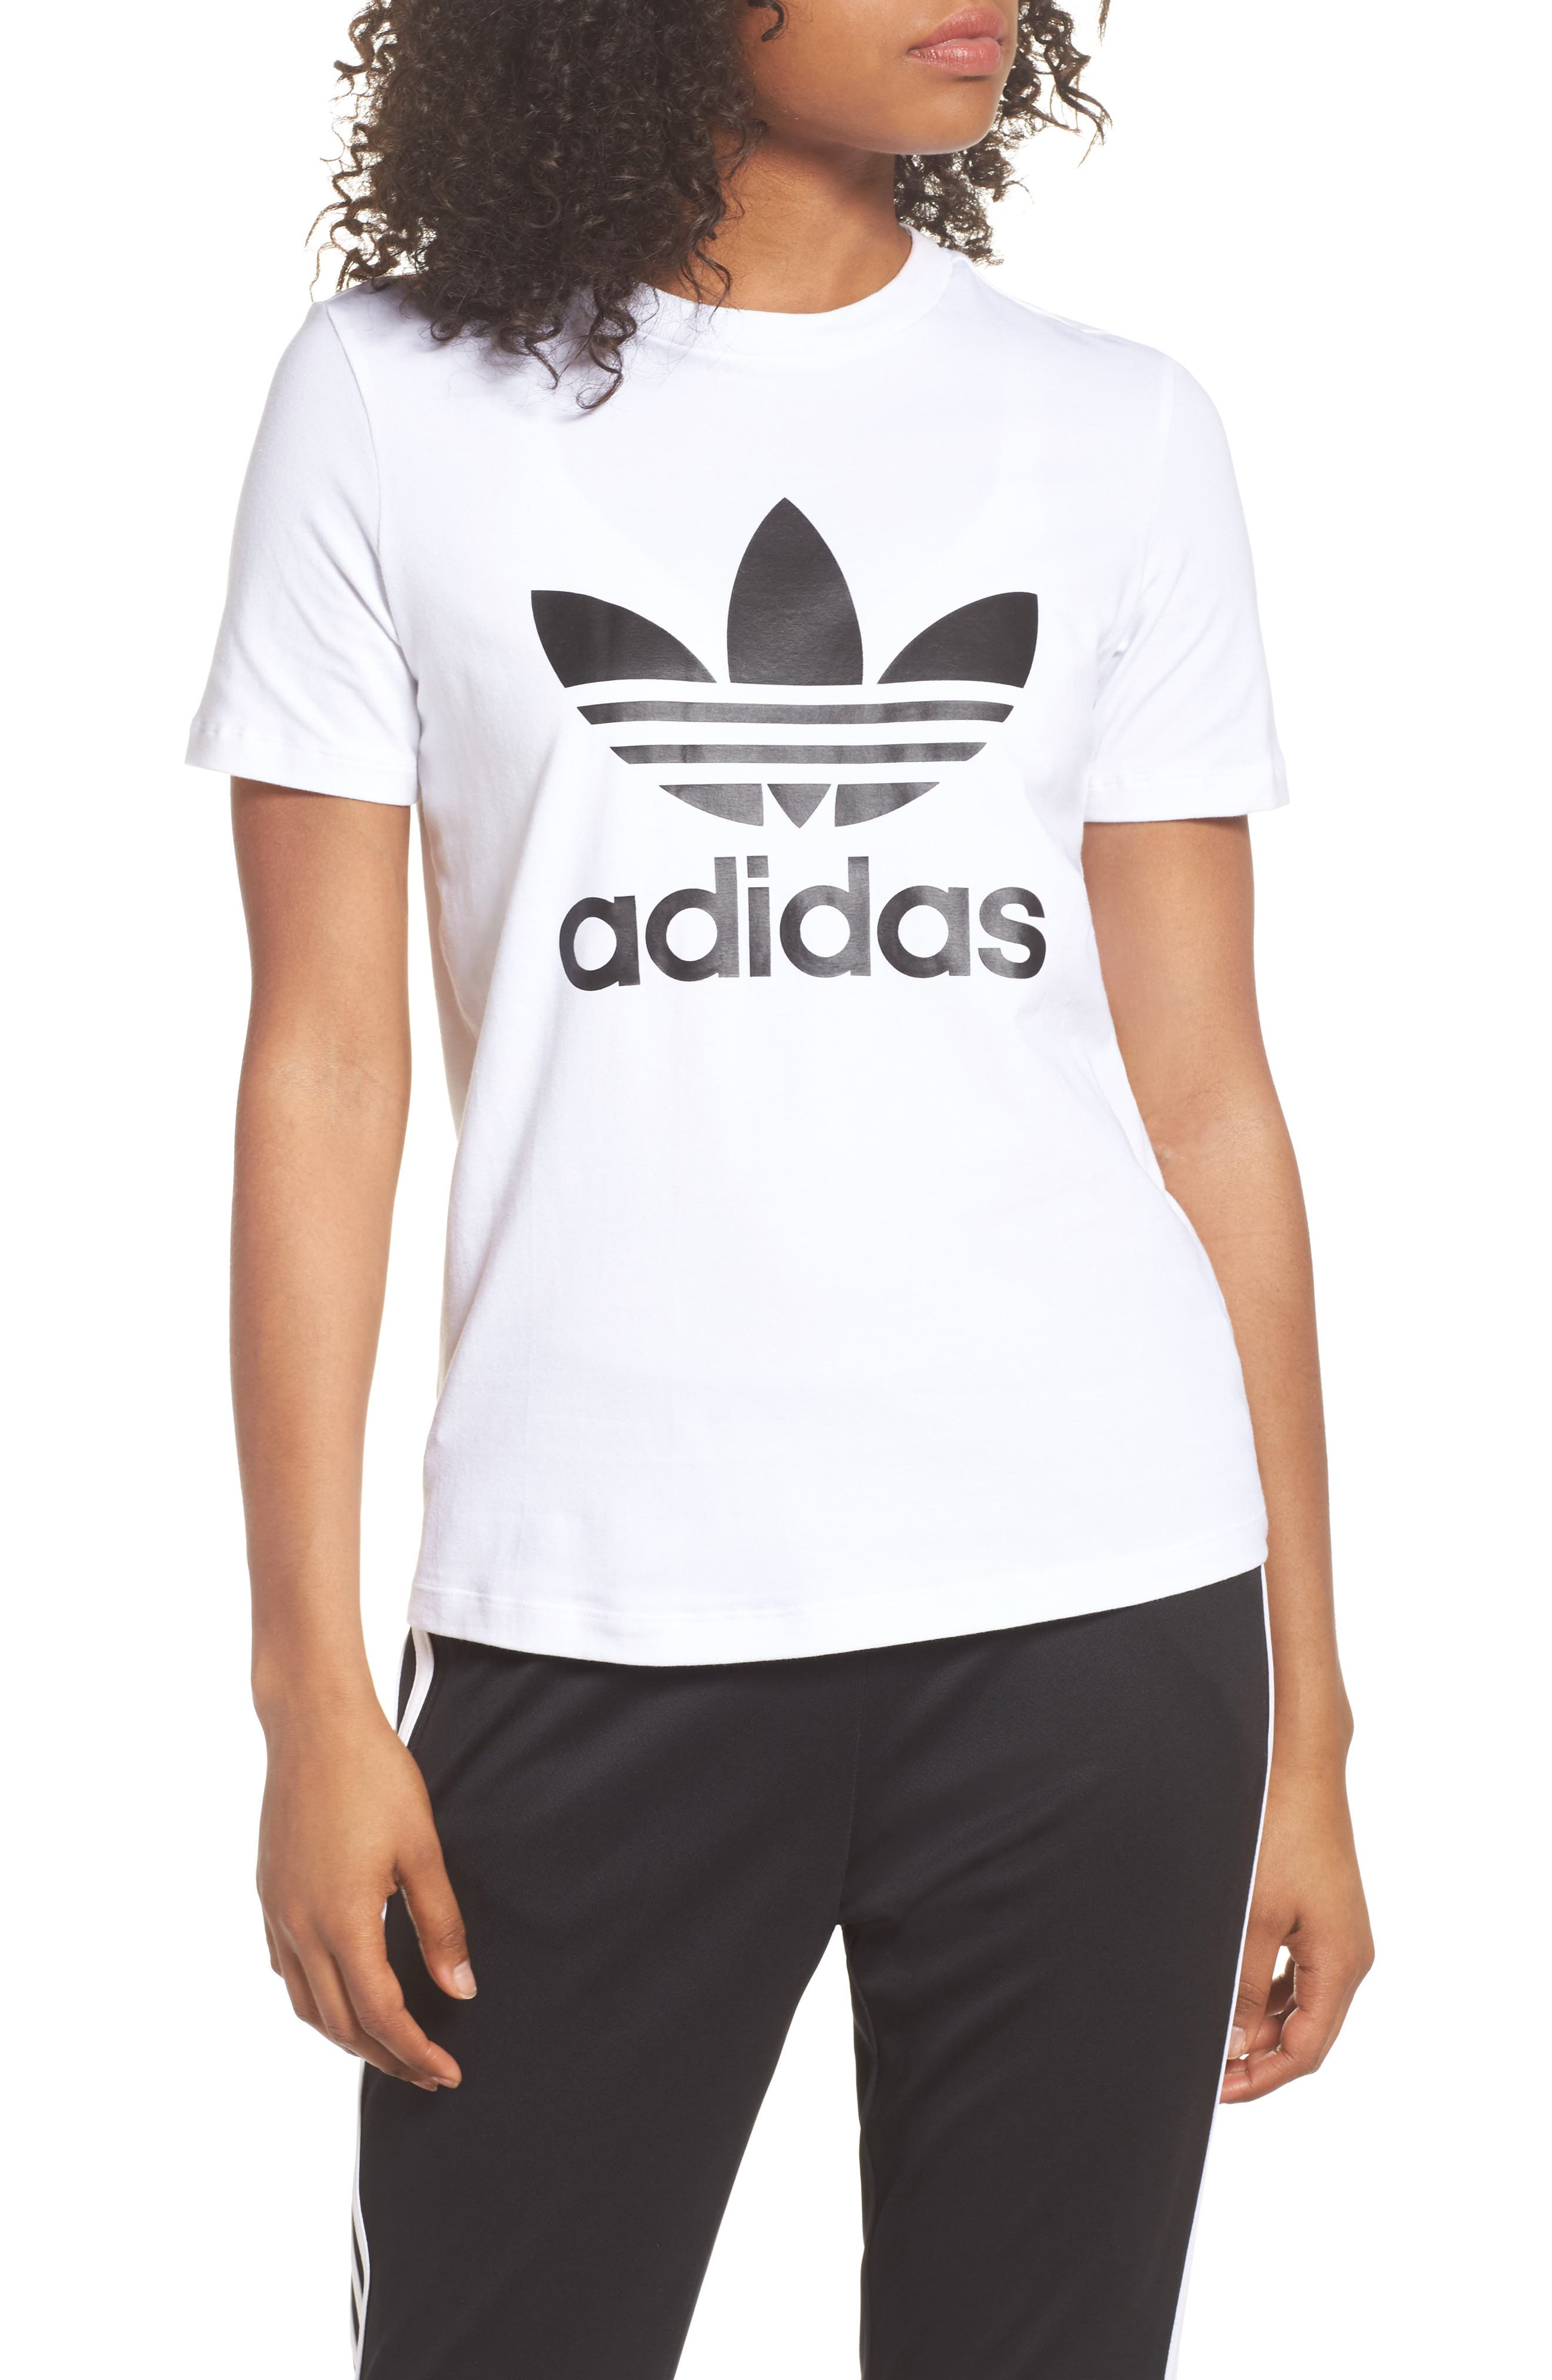 adidas Trefoil Tee,                         Main,                         color, WHITE/ BLACK